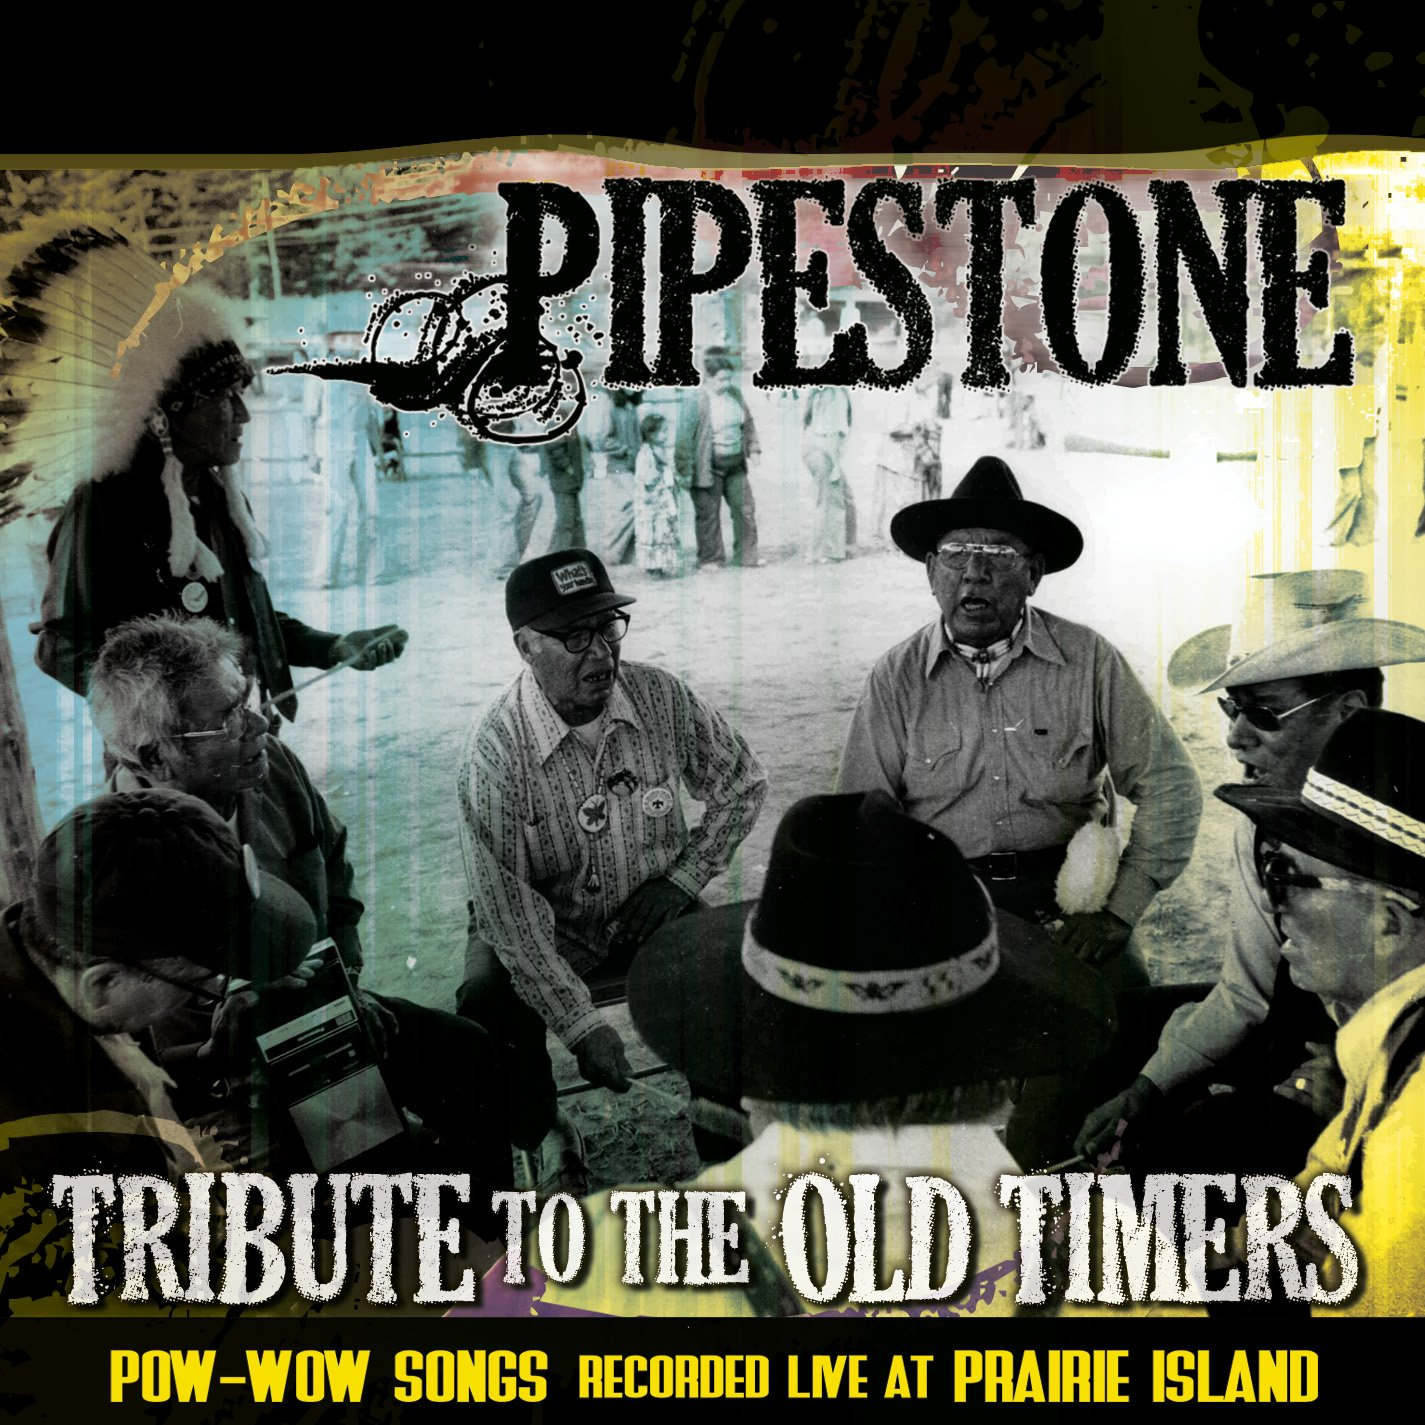 CD : Pipestone - Tribute To The Old Timers: Pow-wow Songs Recorded Live At Prairie Island (CD)